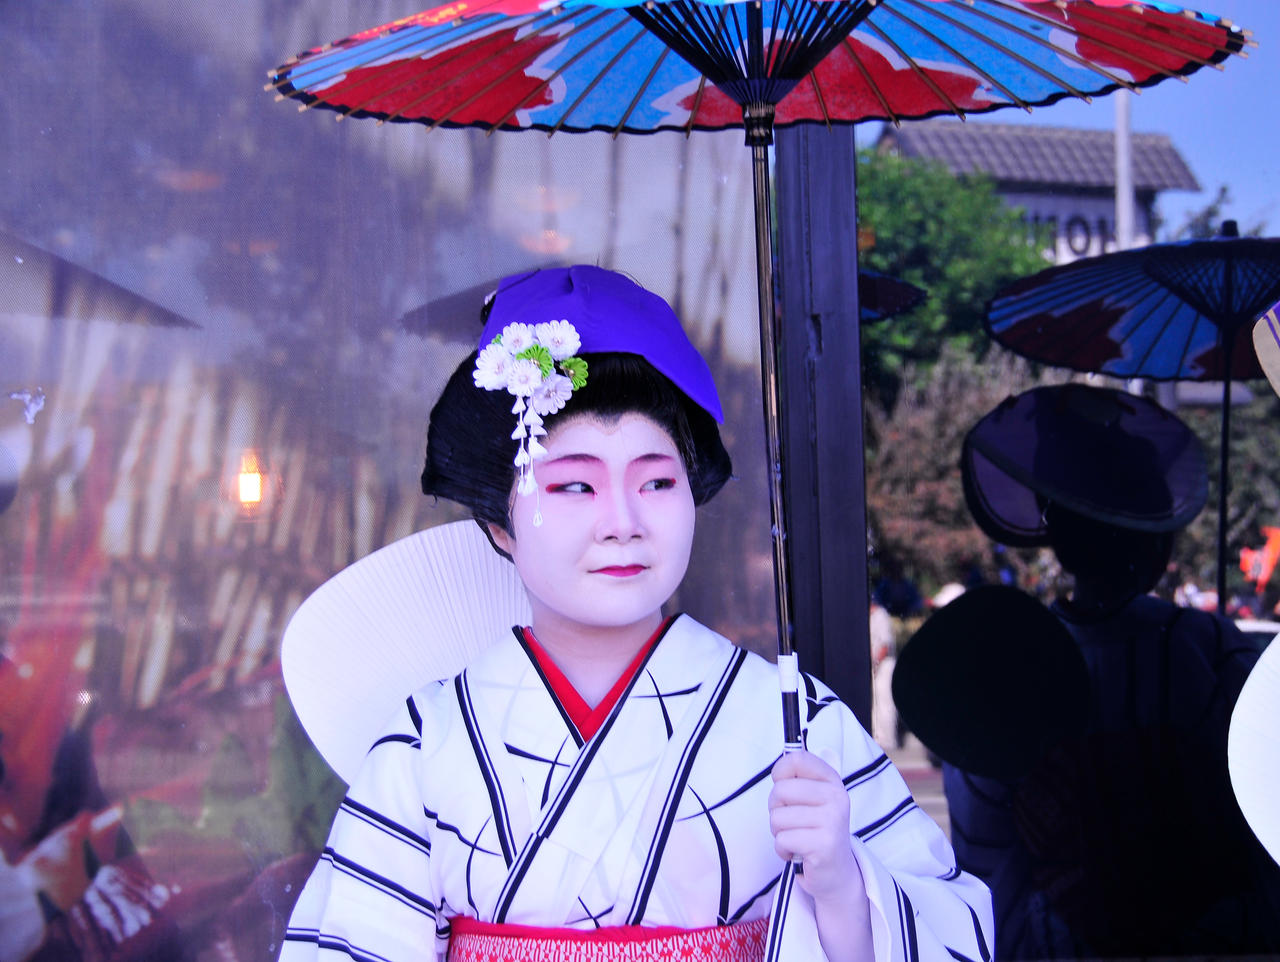 Japanese Lady with Parasol